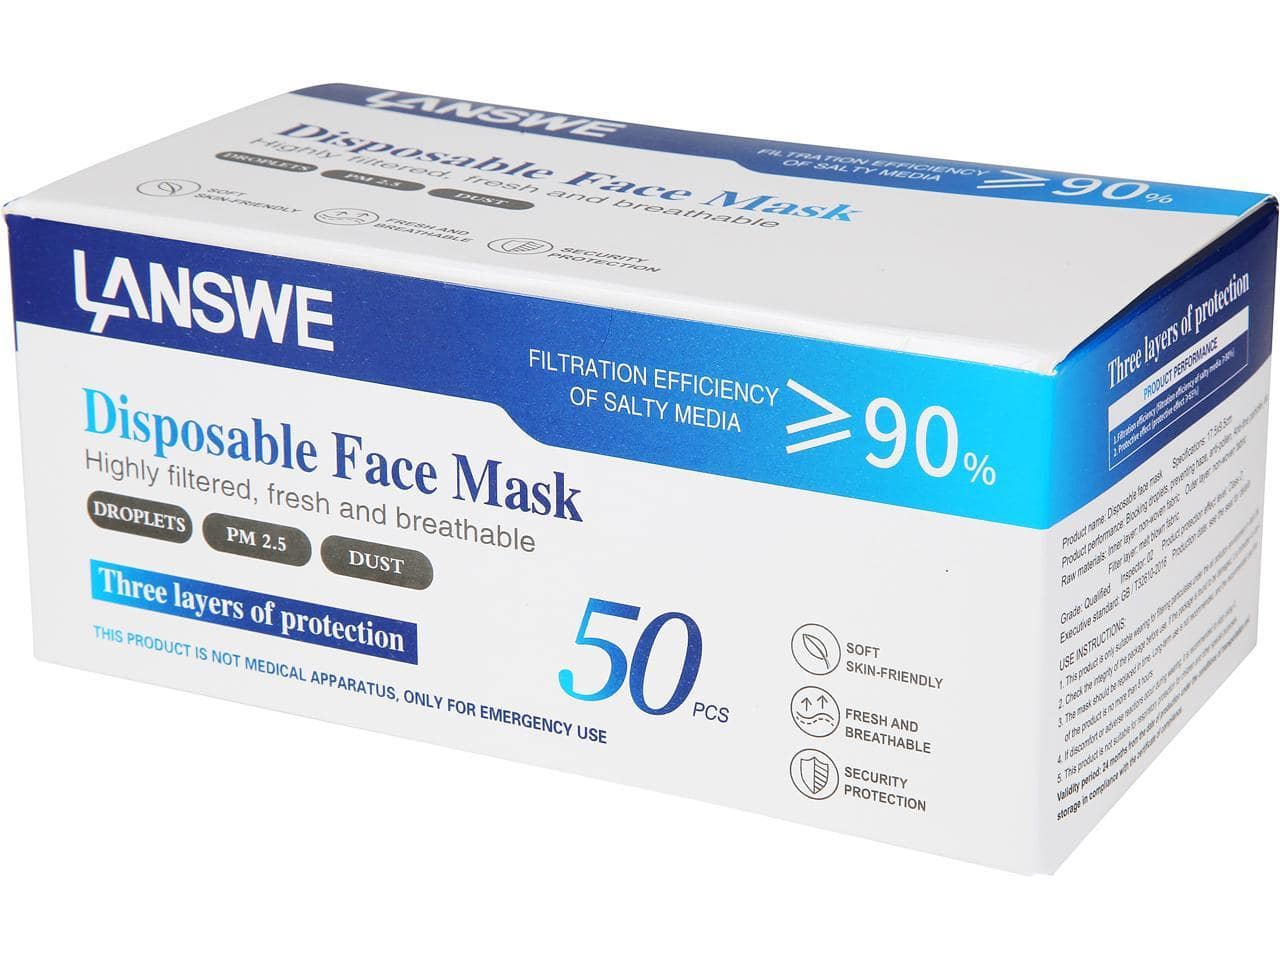 50-pack disposable face masks for $24.99